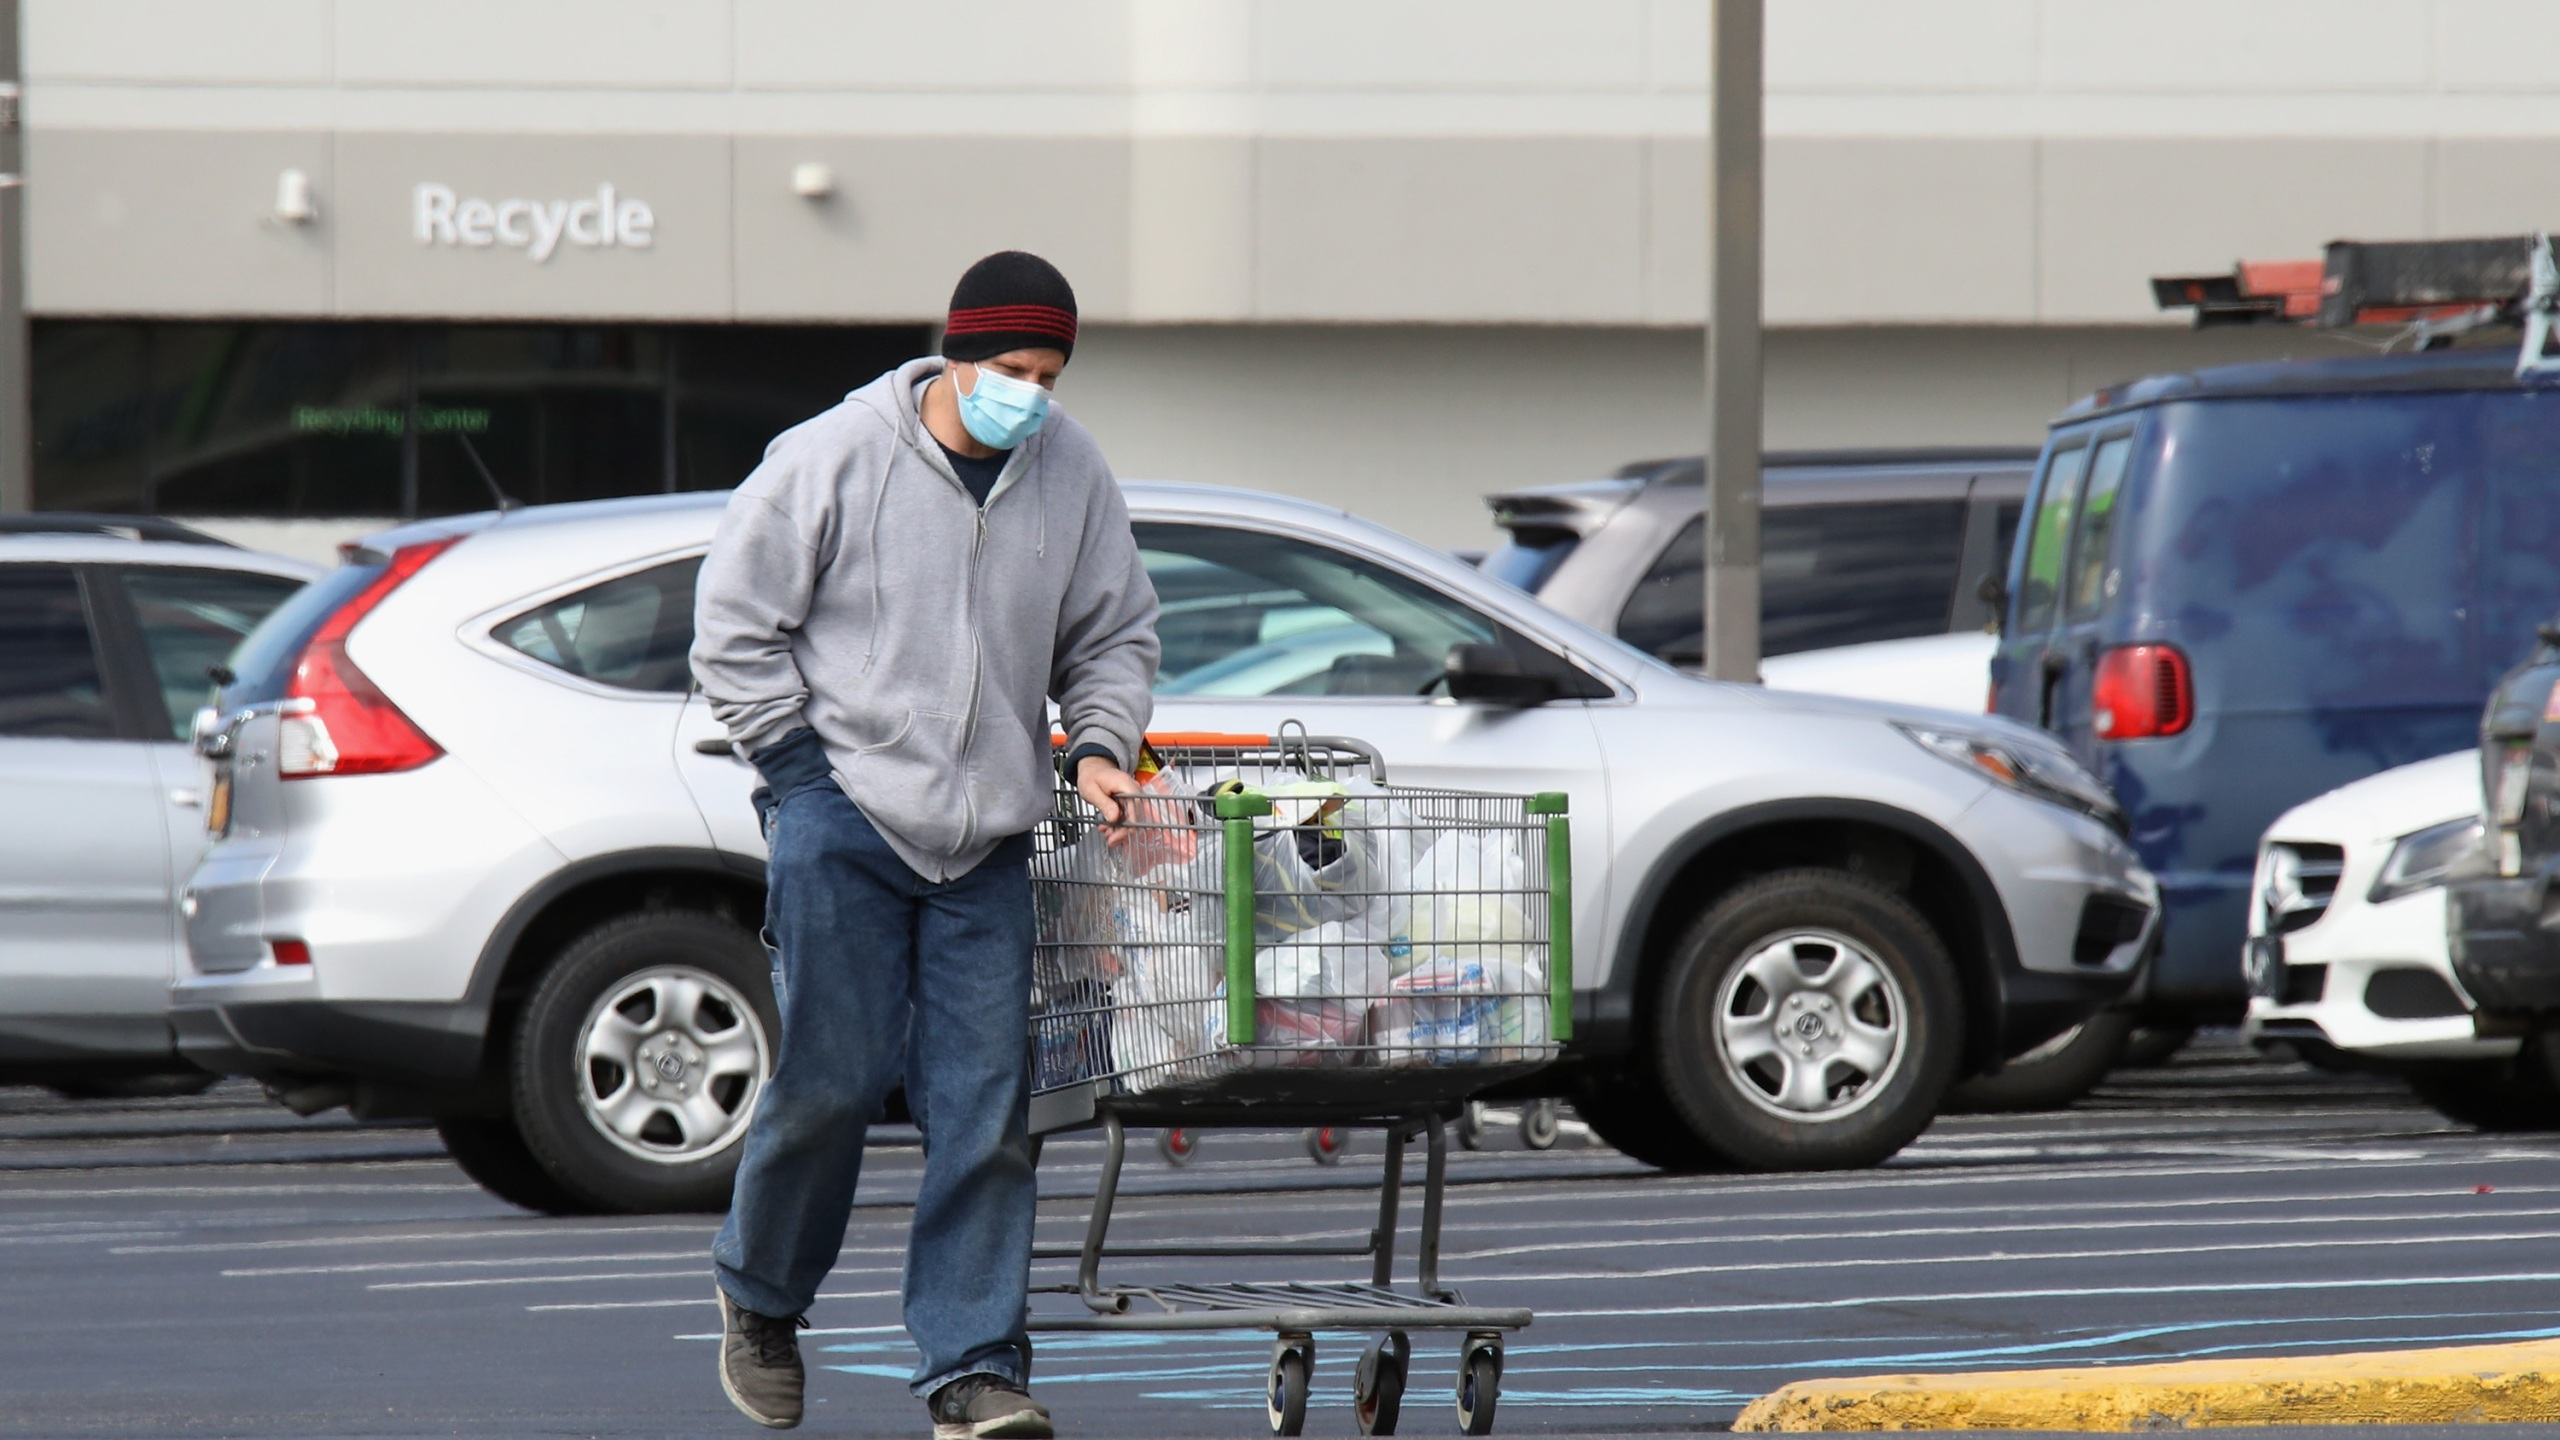 A shopper wearing a face mask returns to his car with goods from a Walmart Neighborhood Market as the coronavirus continues to spread across the United States on March 16, 2020 in Levittown, New York. (Bruce Bennett/Getty Images)